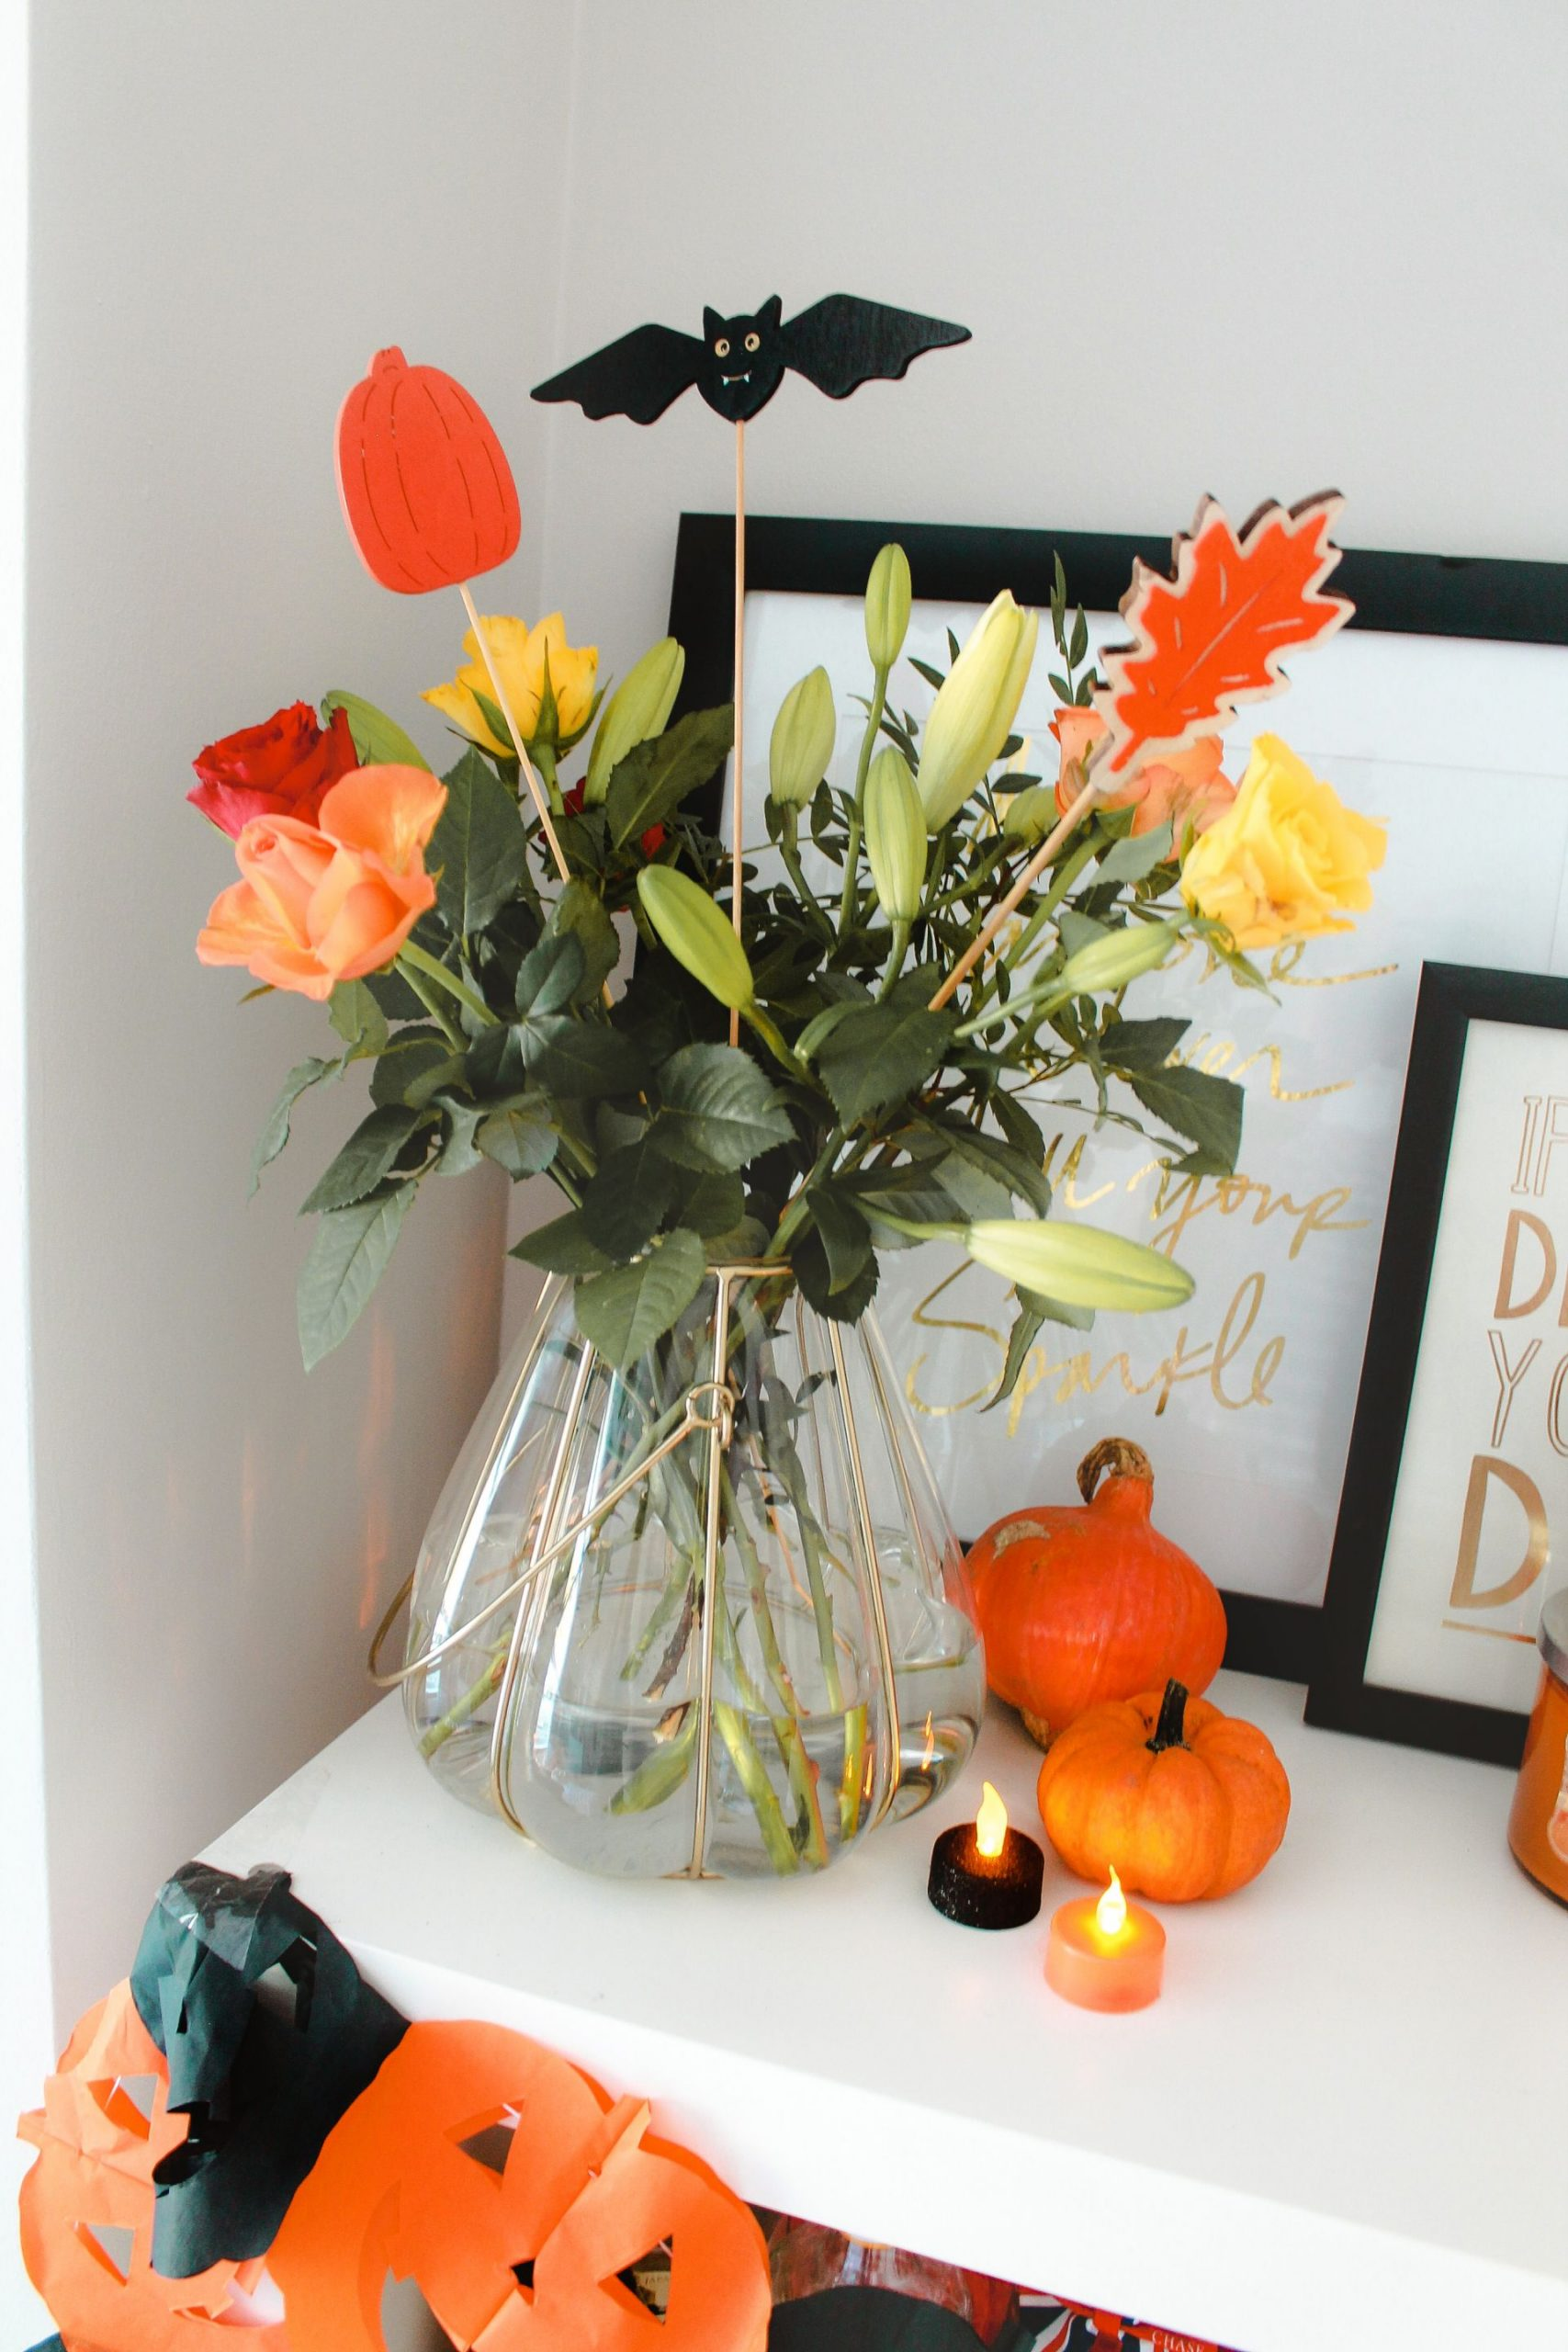 Adding Simple Autumnal Touches to Your Home